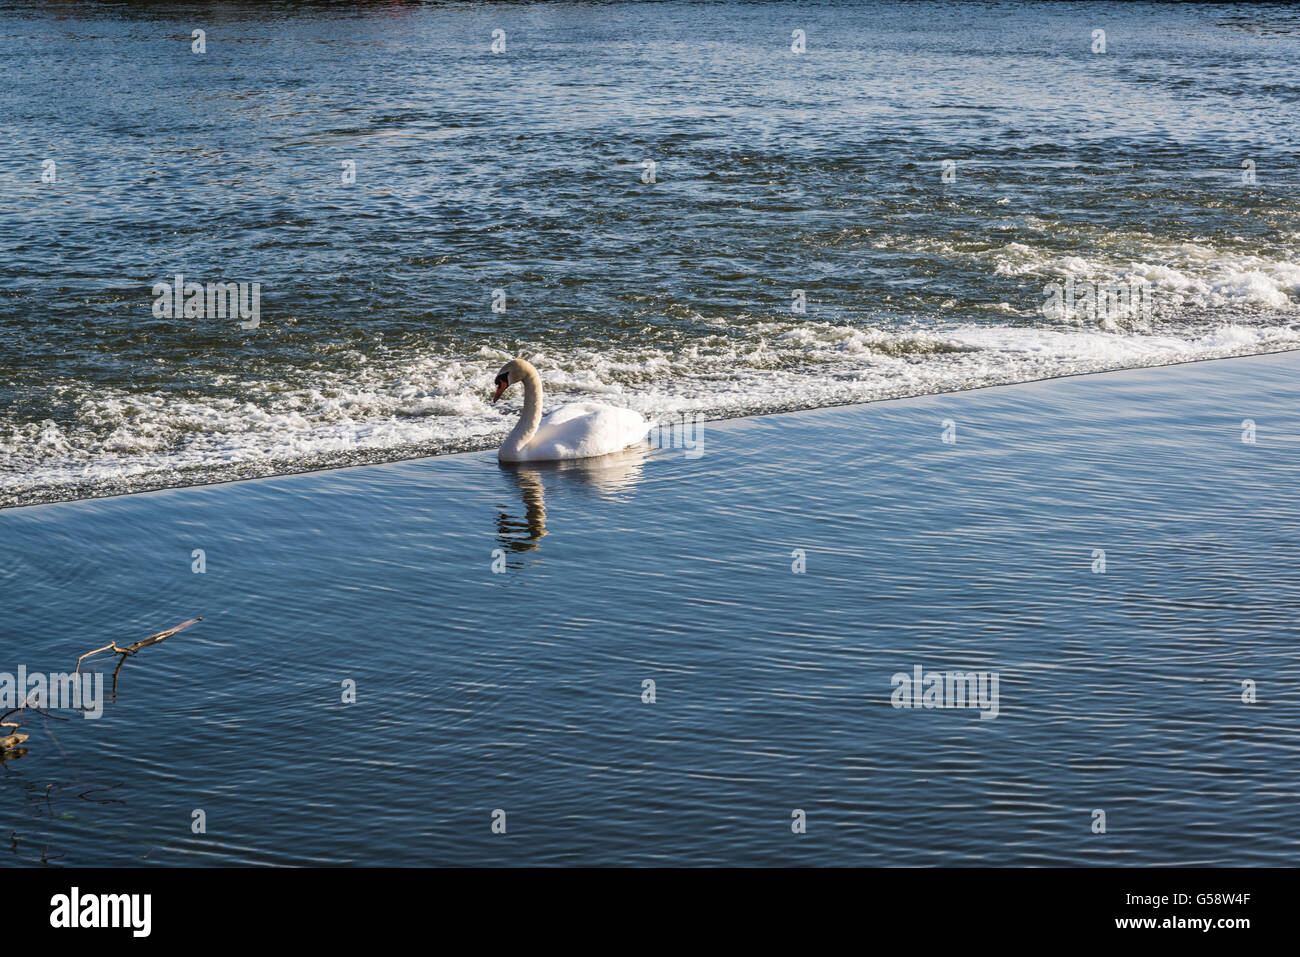 Swan at the edge of weir, River Exe, Exeter, Devon, England - Stock Image